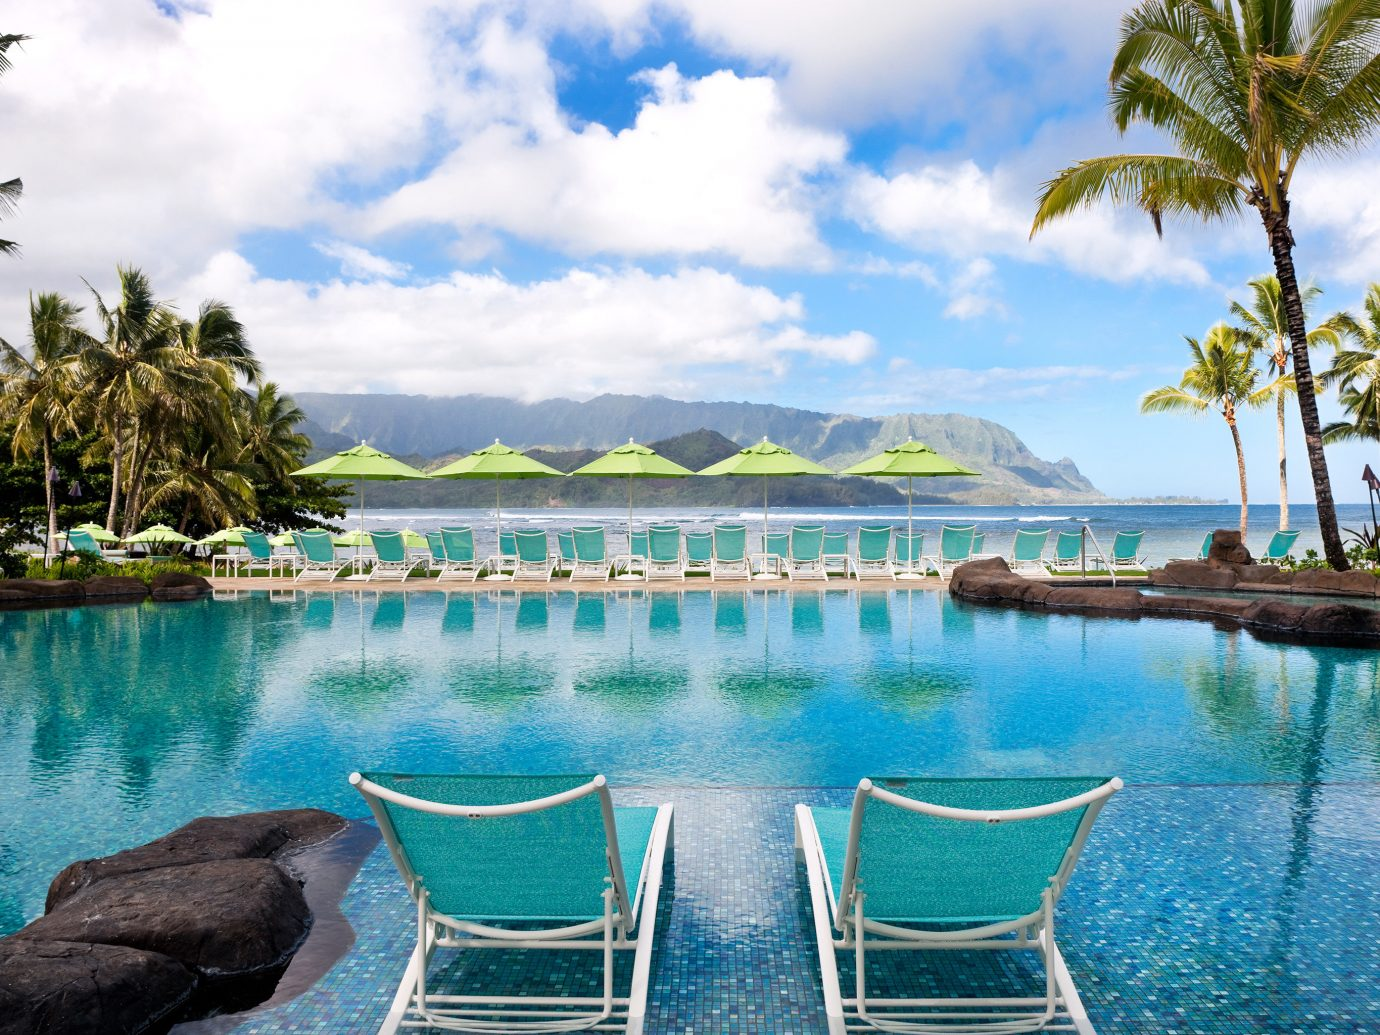 Infinity Pool At St. Regis Princeville Resort In Kauai, Hawaii